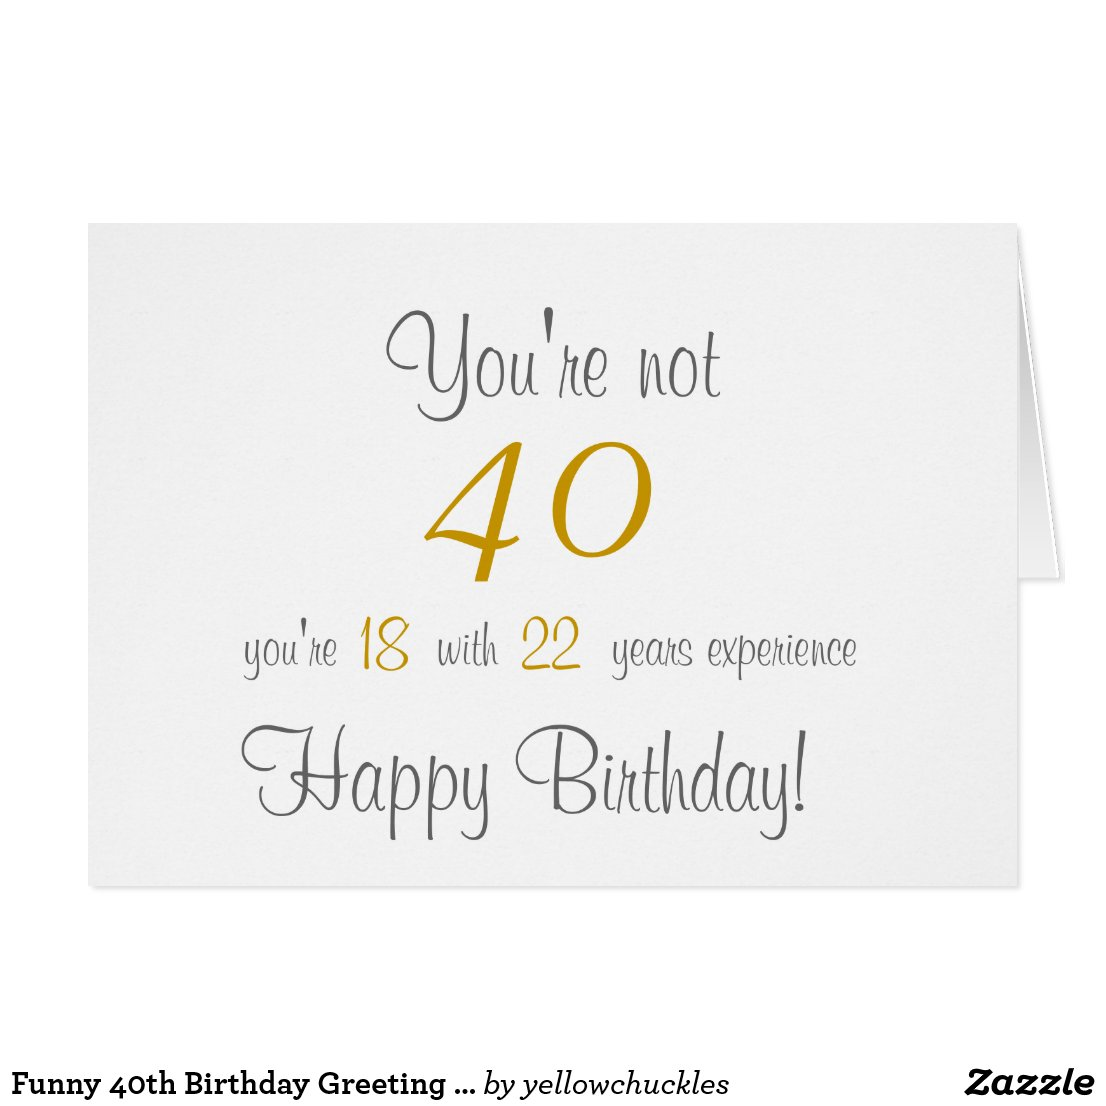 Funny 40th Birthday Greeting Card